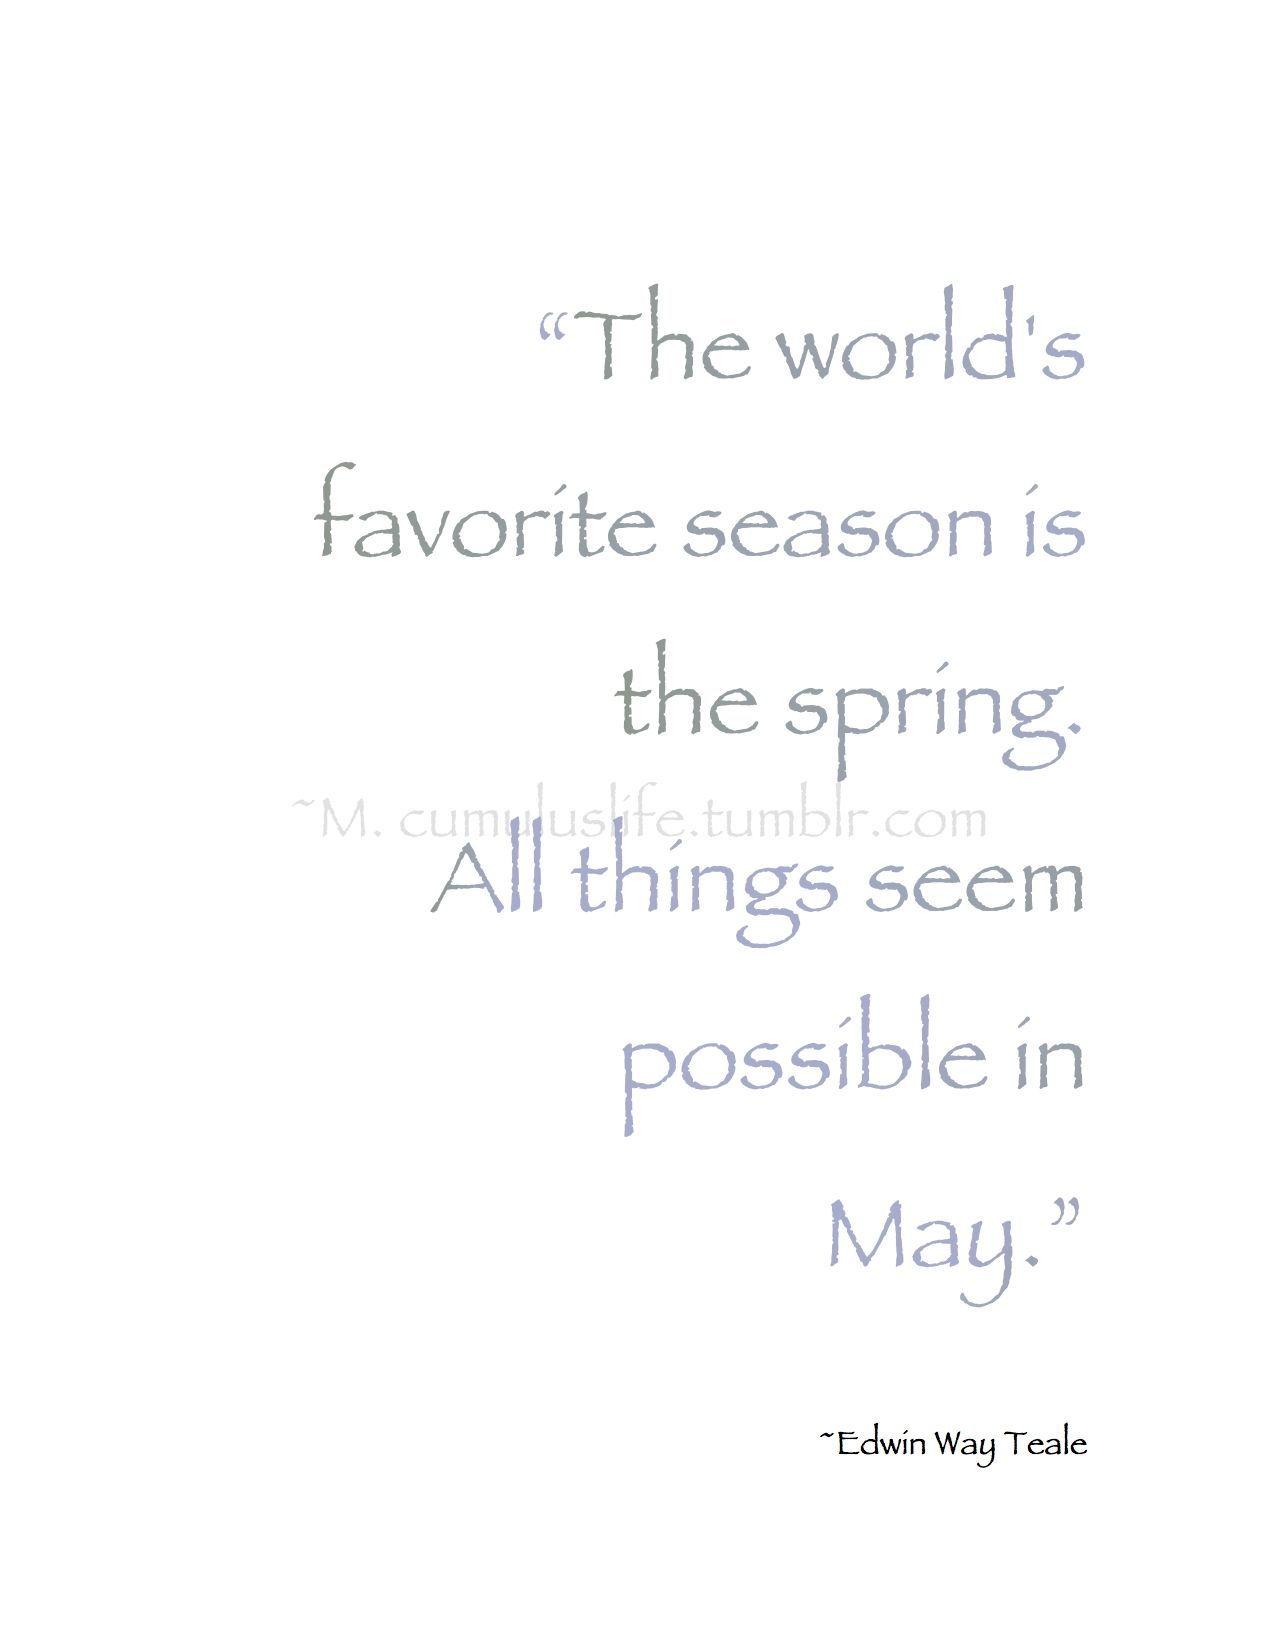 Spring Pirouettes The Worlds Favorite Season Is All Things Seem Possible In May Edwin Way Teale Quote